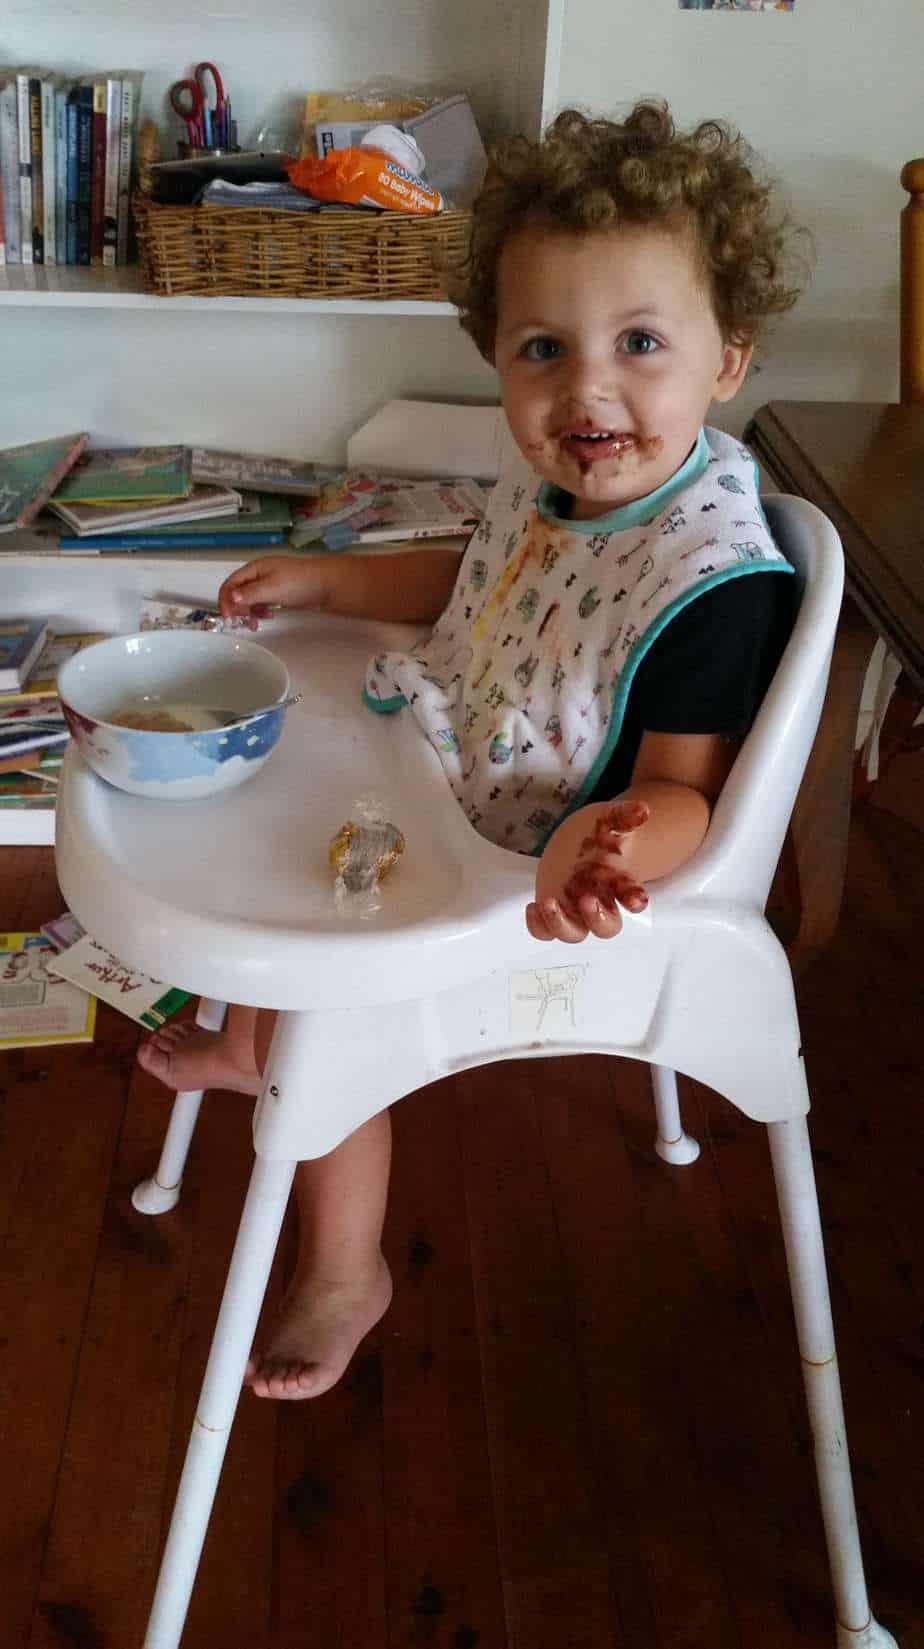 Boy gets a reward after doing a poop on day 4 of potty training. #day4tpottytraining #pottytraining